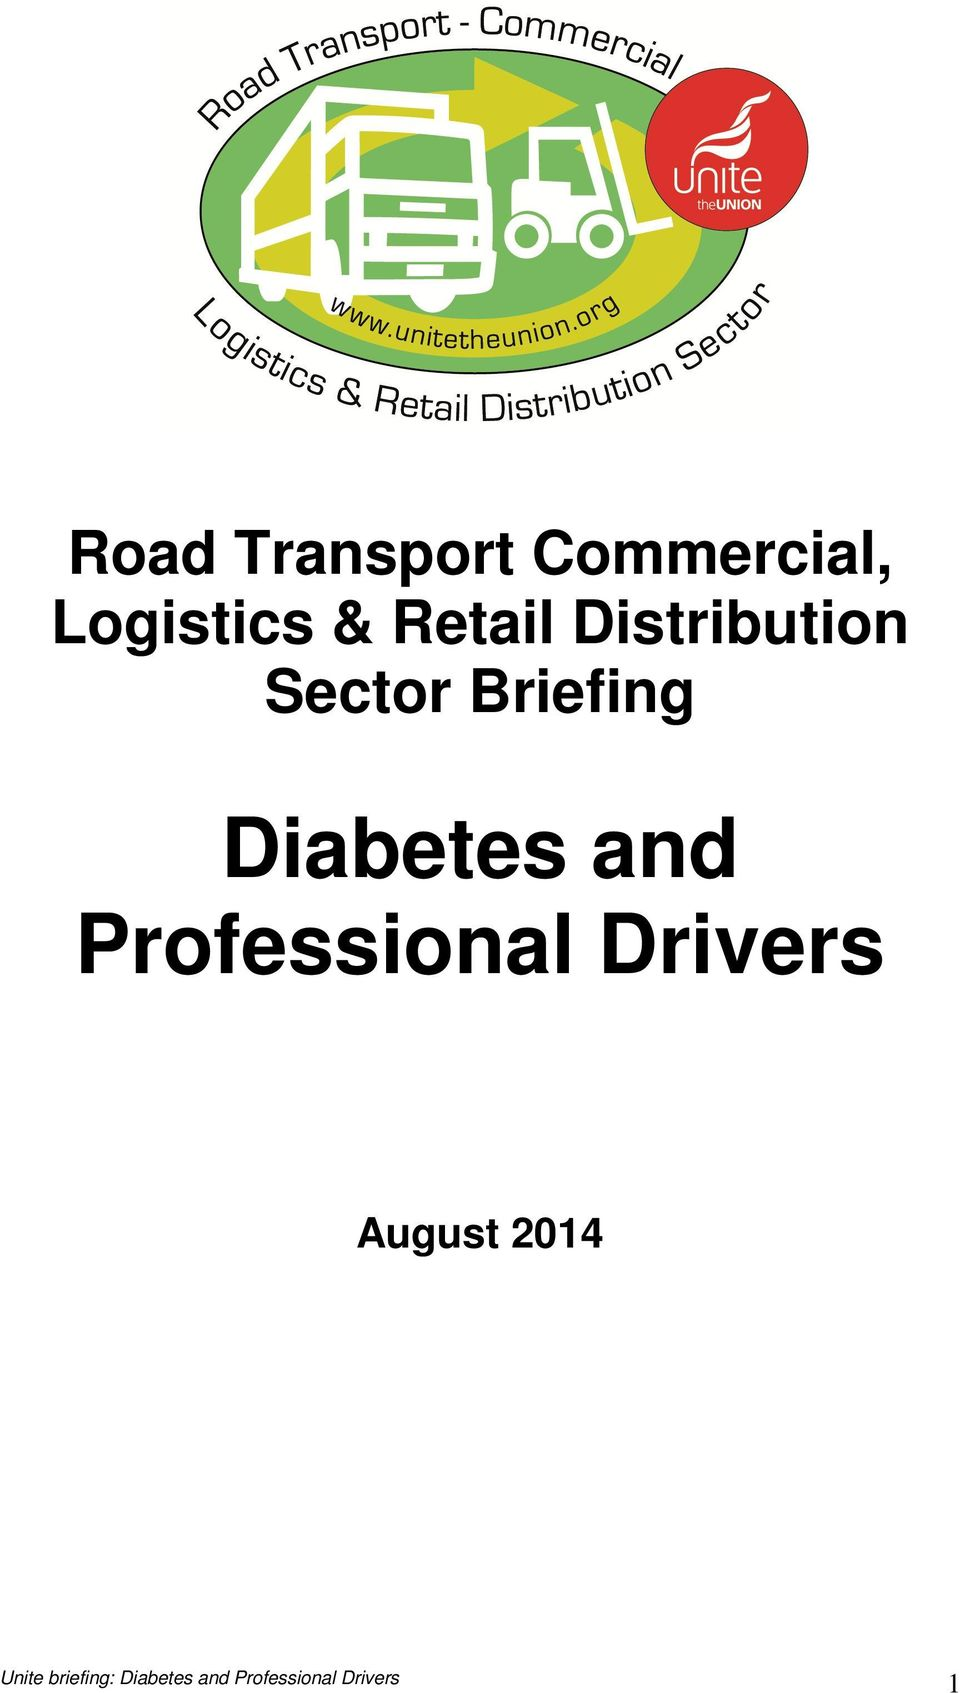 Distribution Sector Briefing